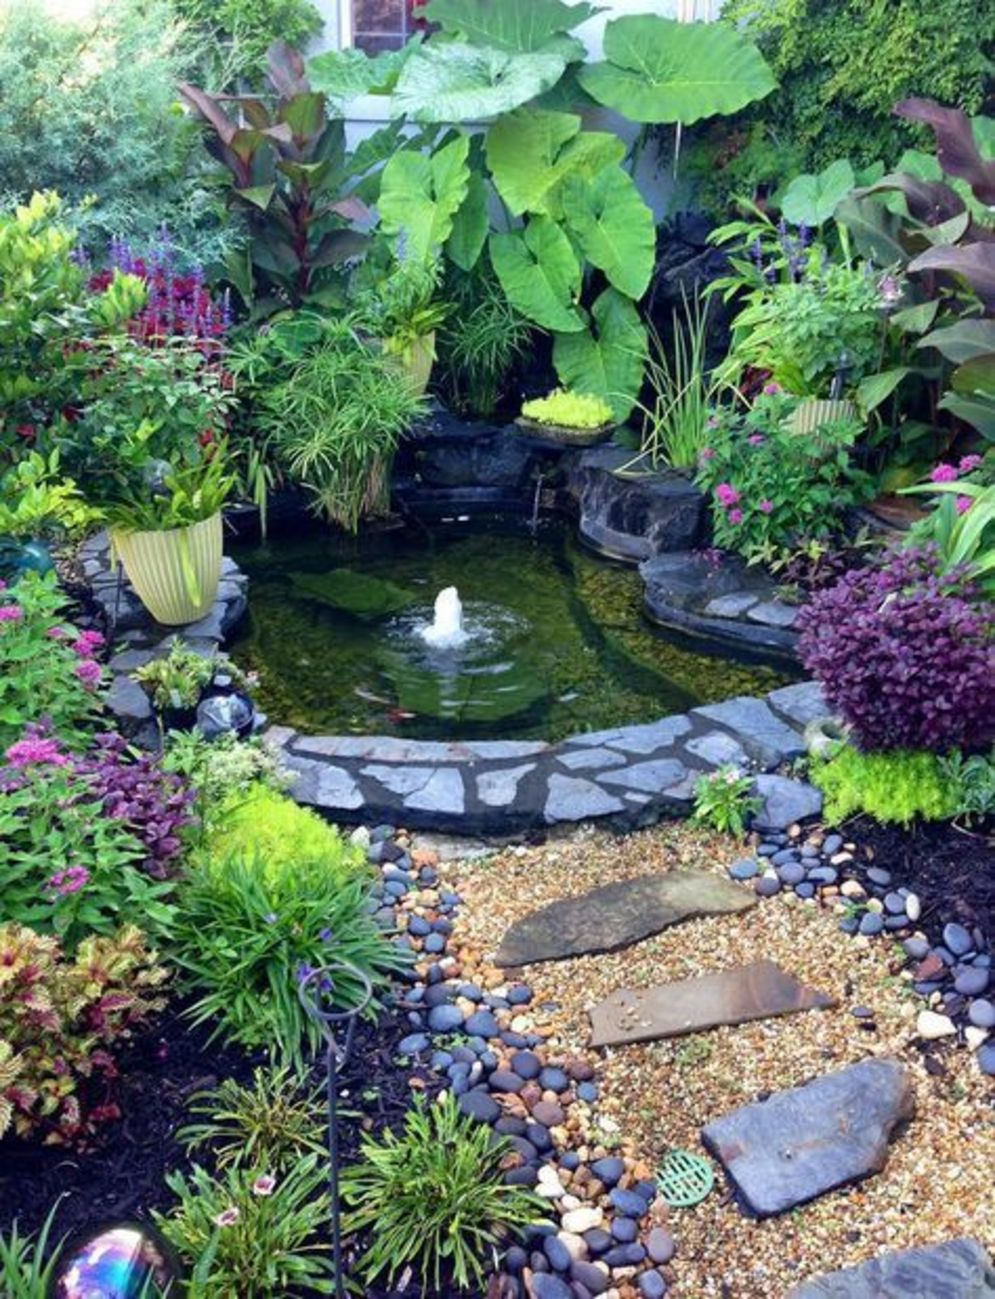 Clever exterior update showing different fresh fish pond designs Image 19